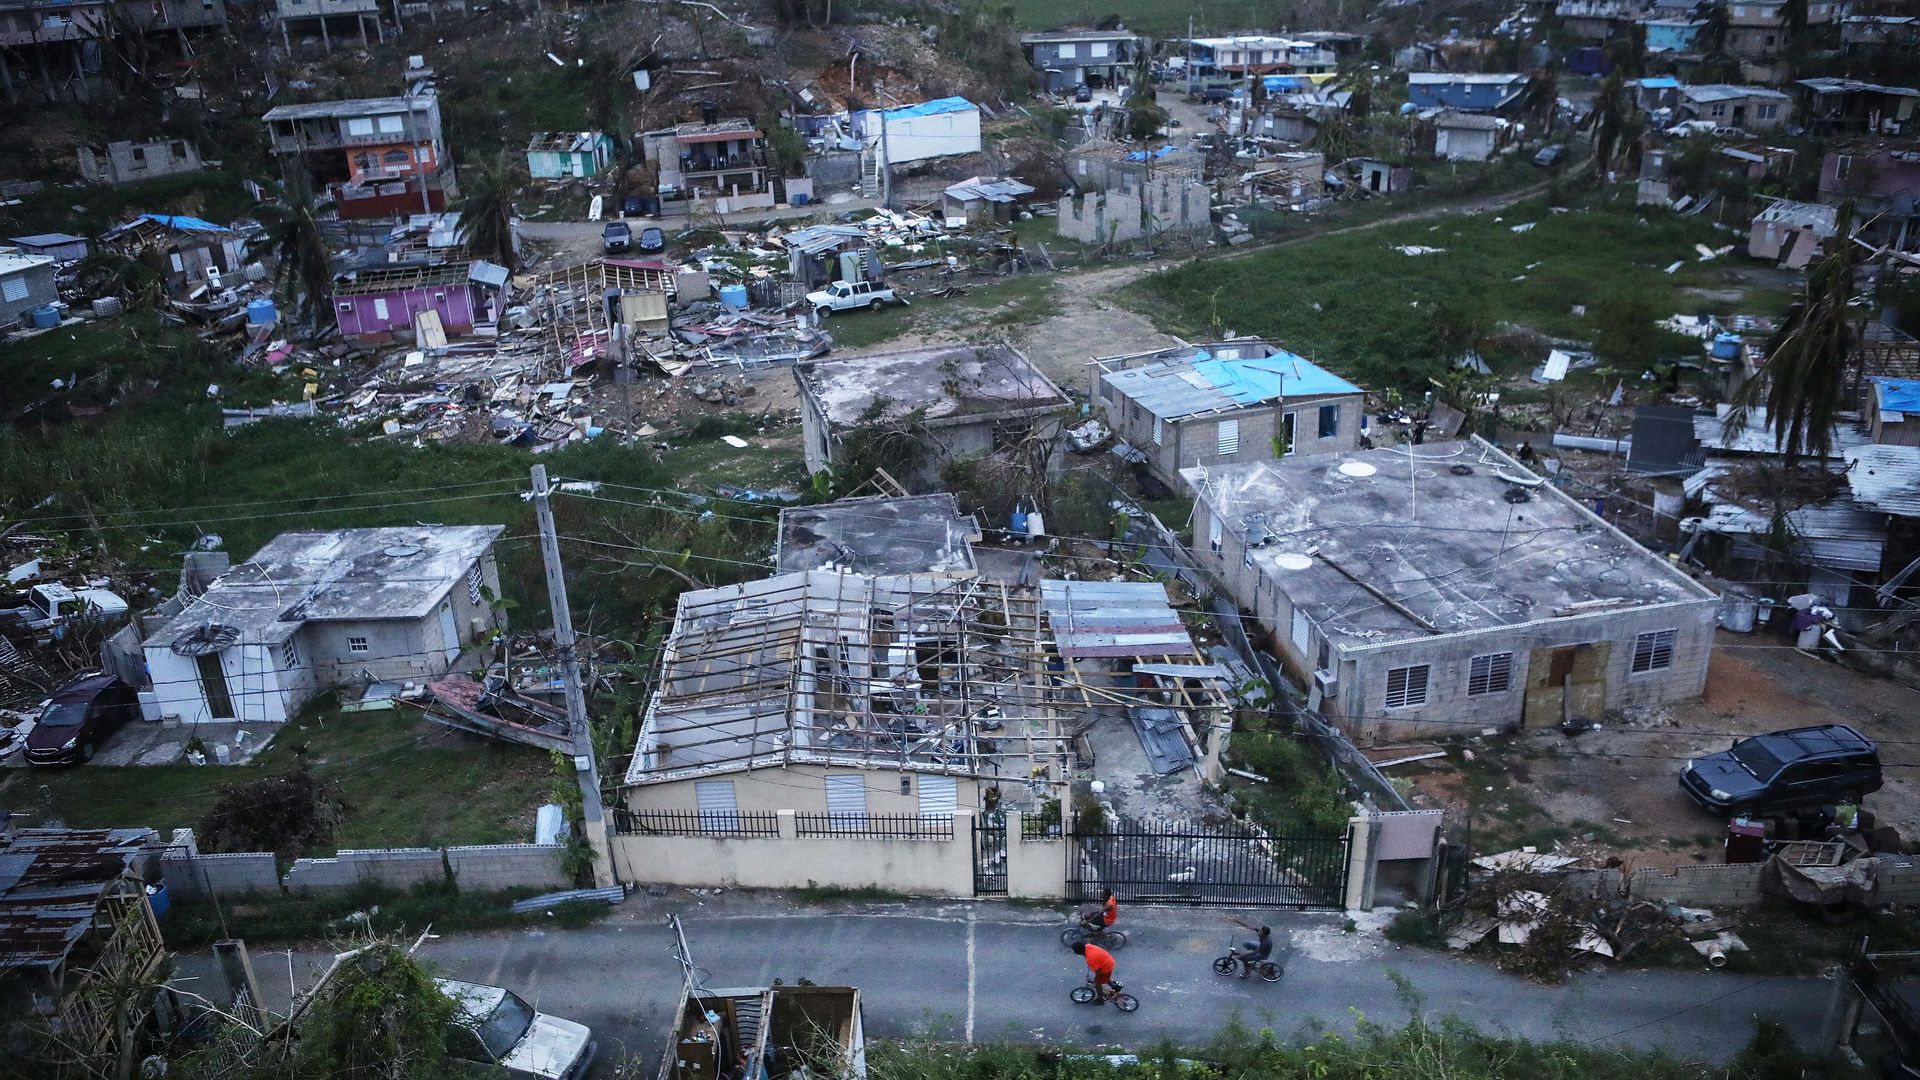 Two weeks after Hurricane Maria swept through Puerto Rico in 2017.